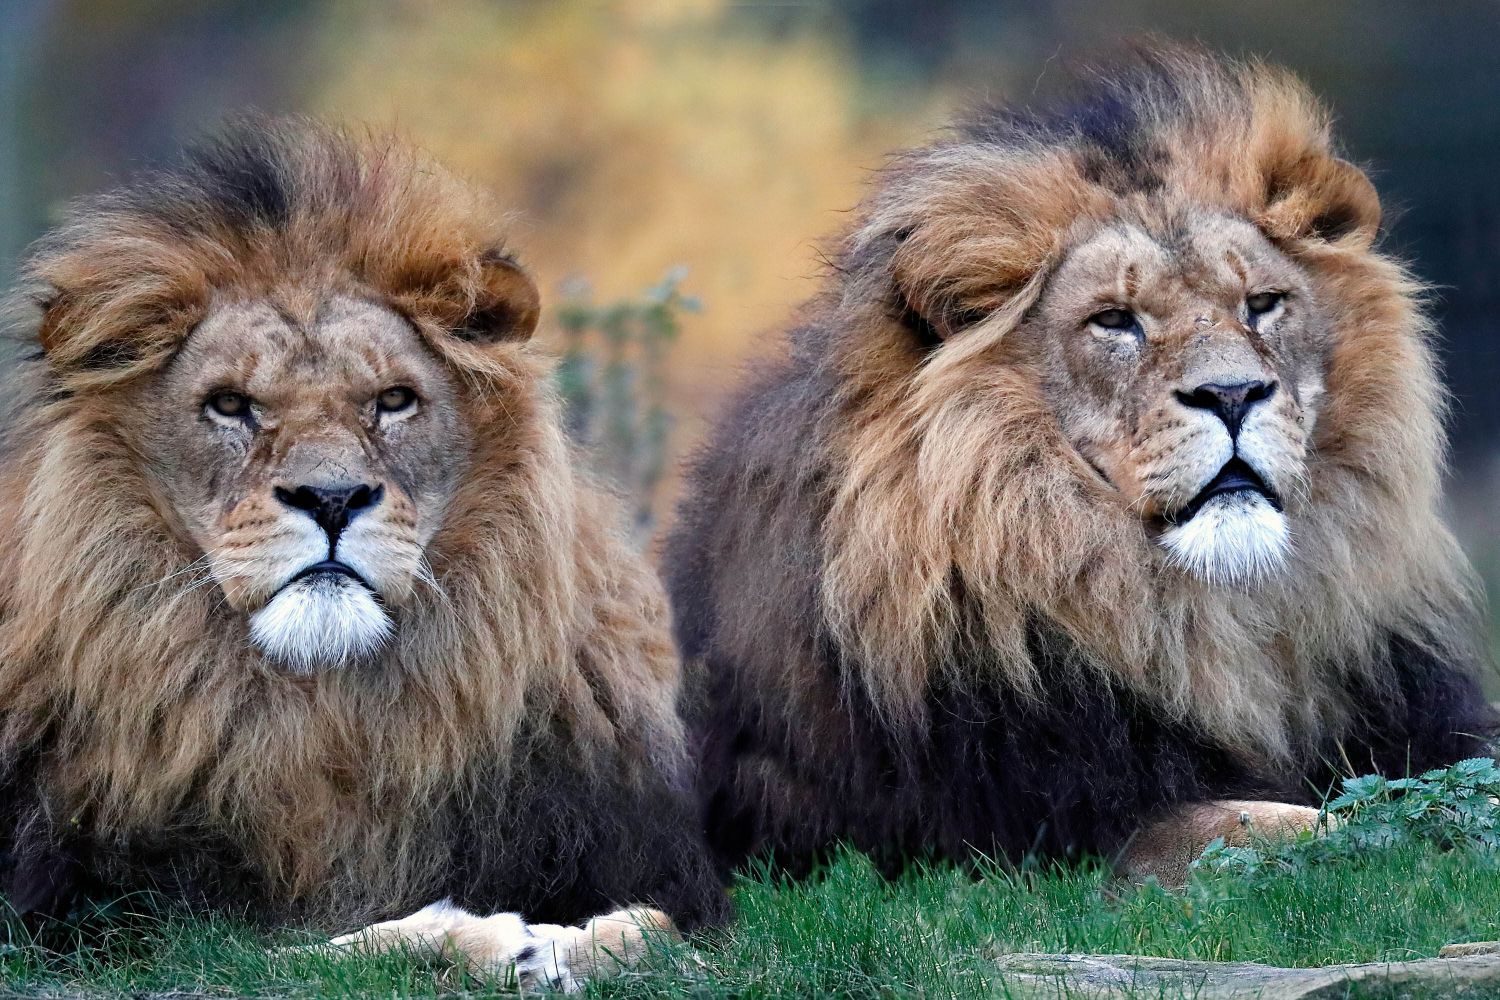 Male Lions on guard